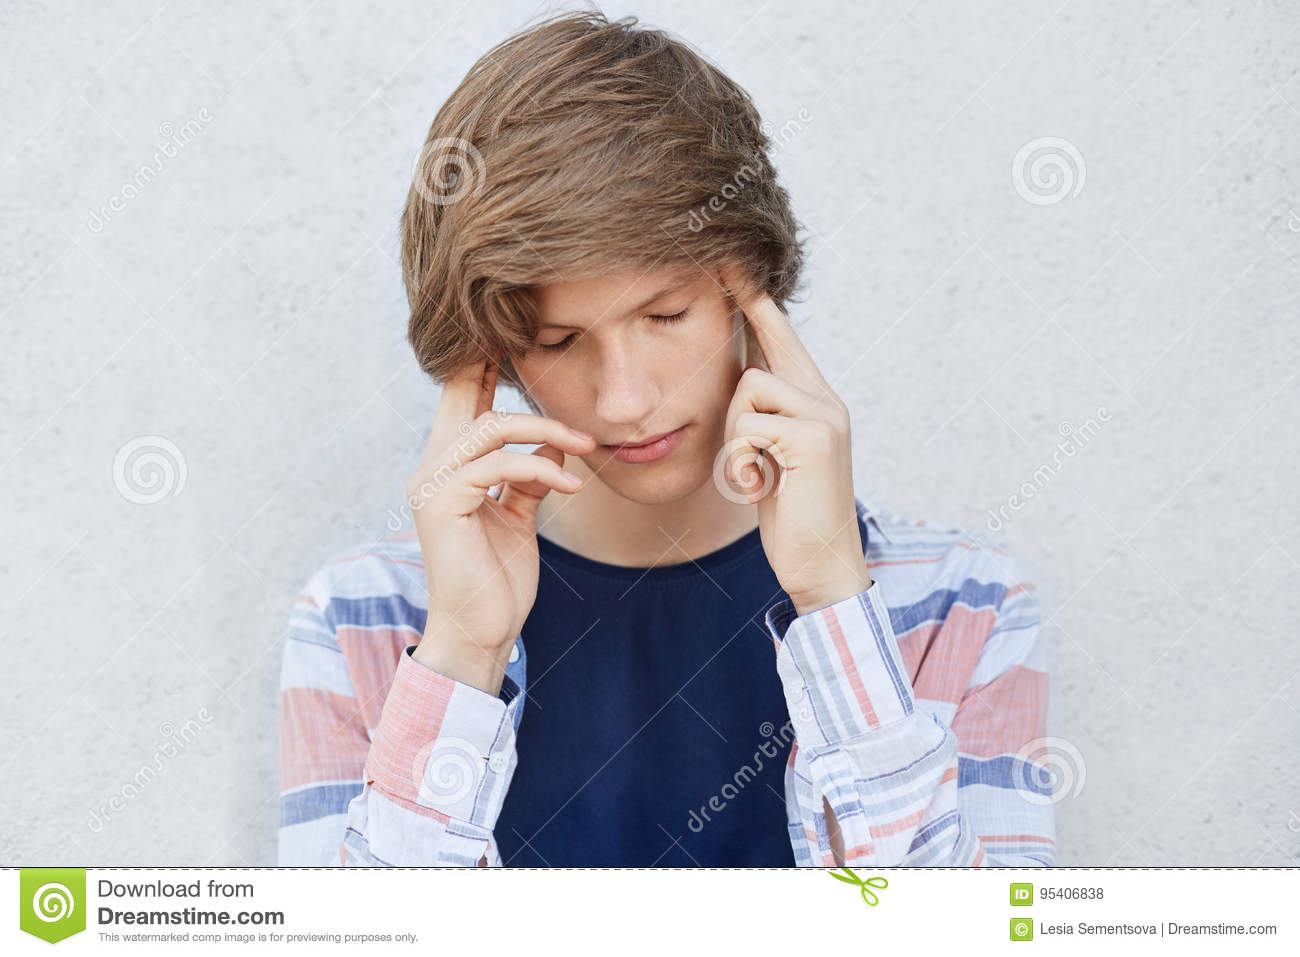 Pensive Concentrated Teenage Boy With Stylish Haircut